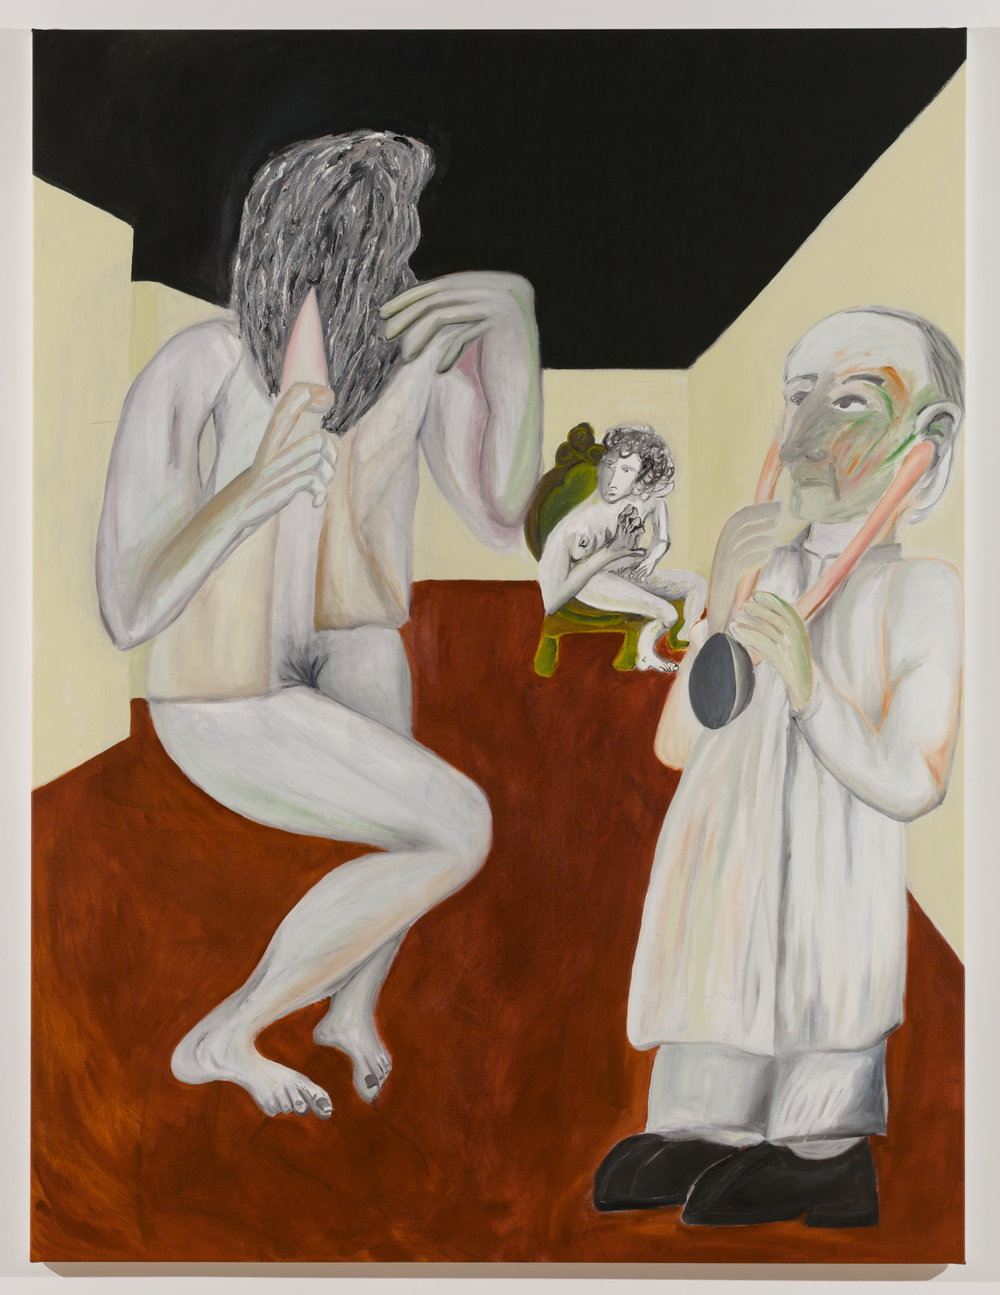 Sofi Brazzeal,  Untitled (doctor, seated woman and woman with hairbrush 2),  2016, oil and acrylic on canvas, 72 x 54 in